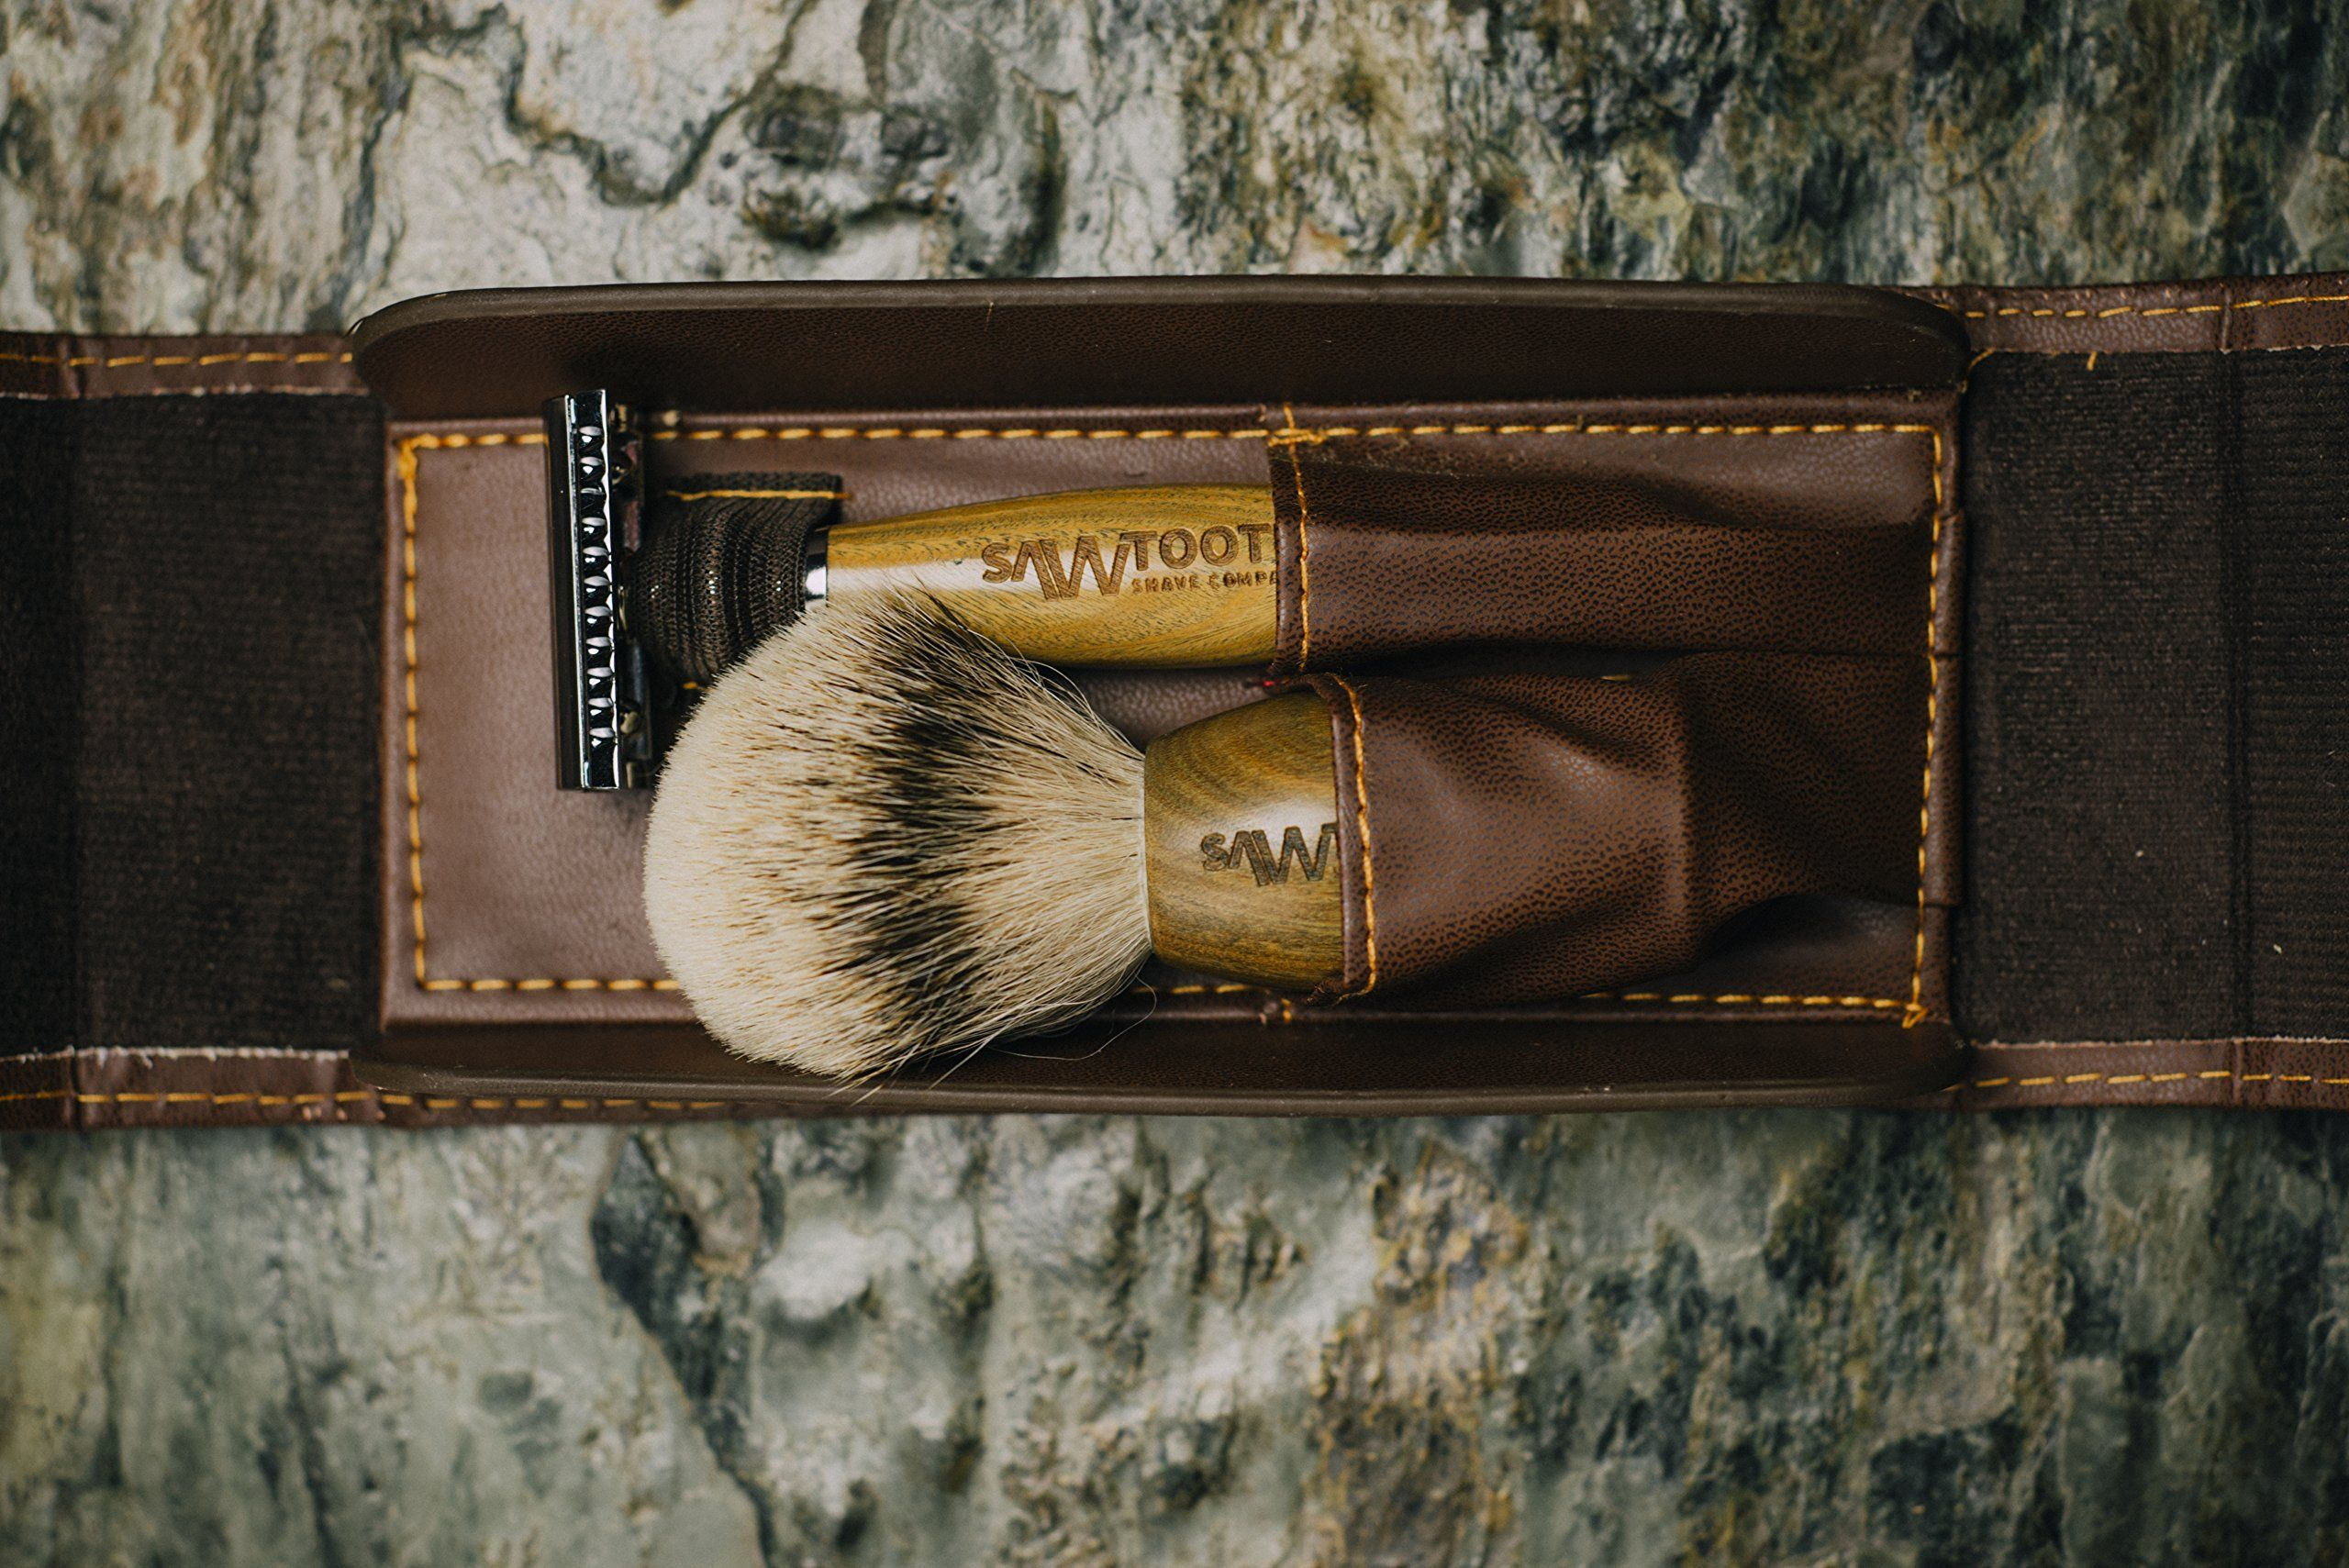 Sawtooth Shave Co. Most Popular Double Edge Safety Razor